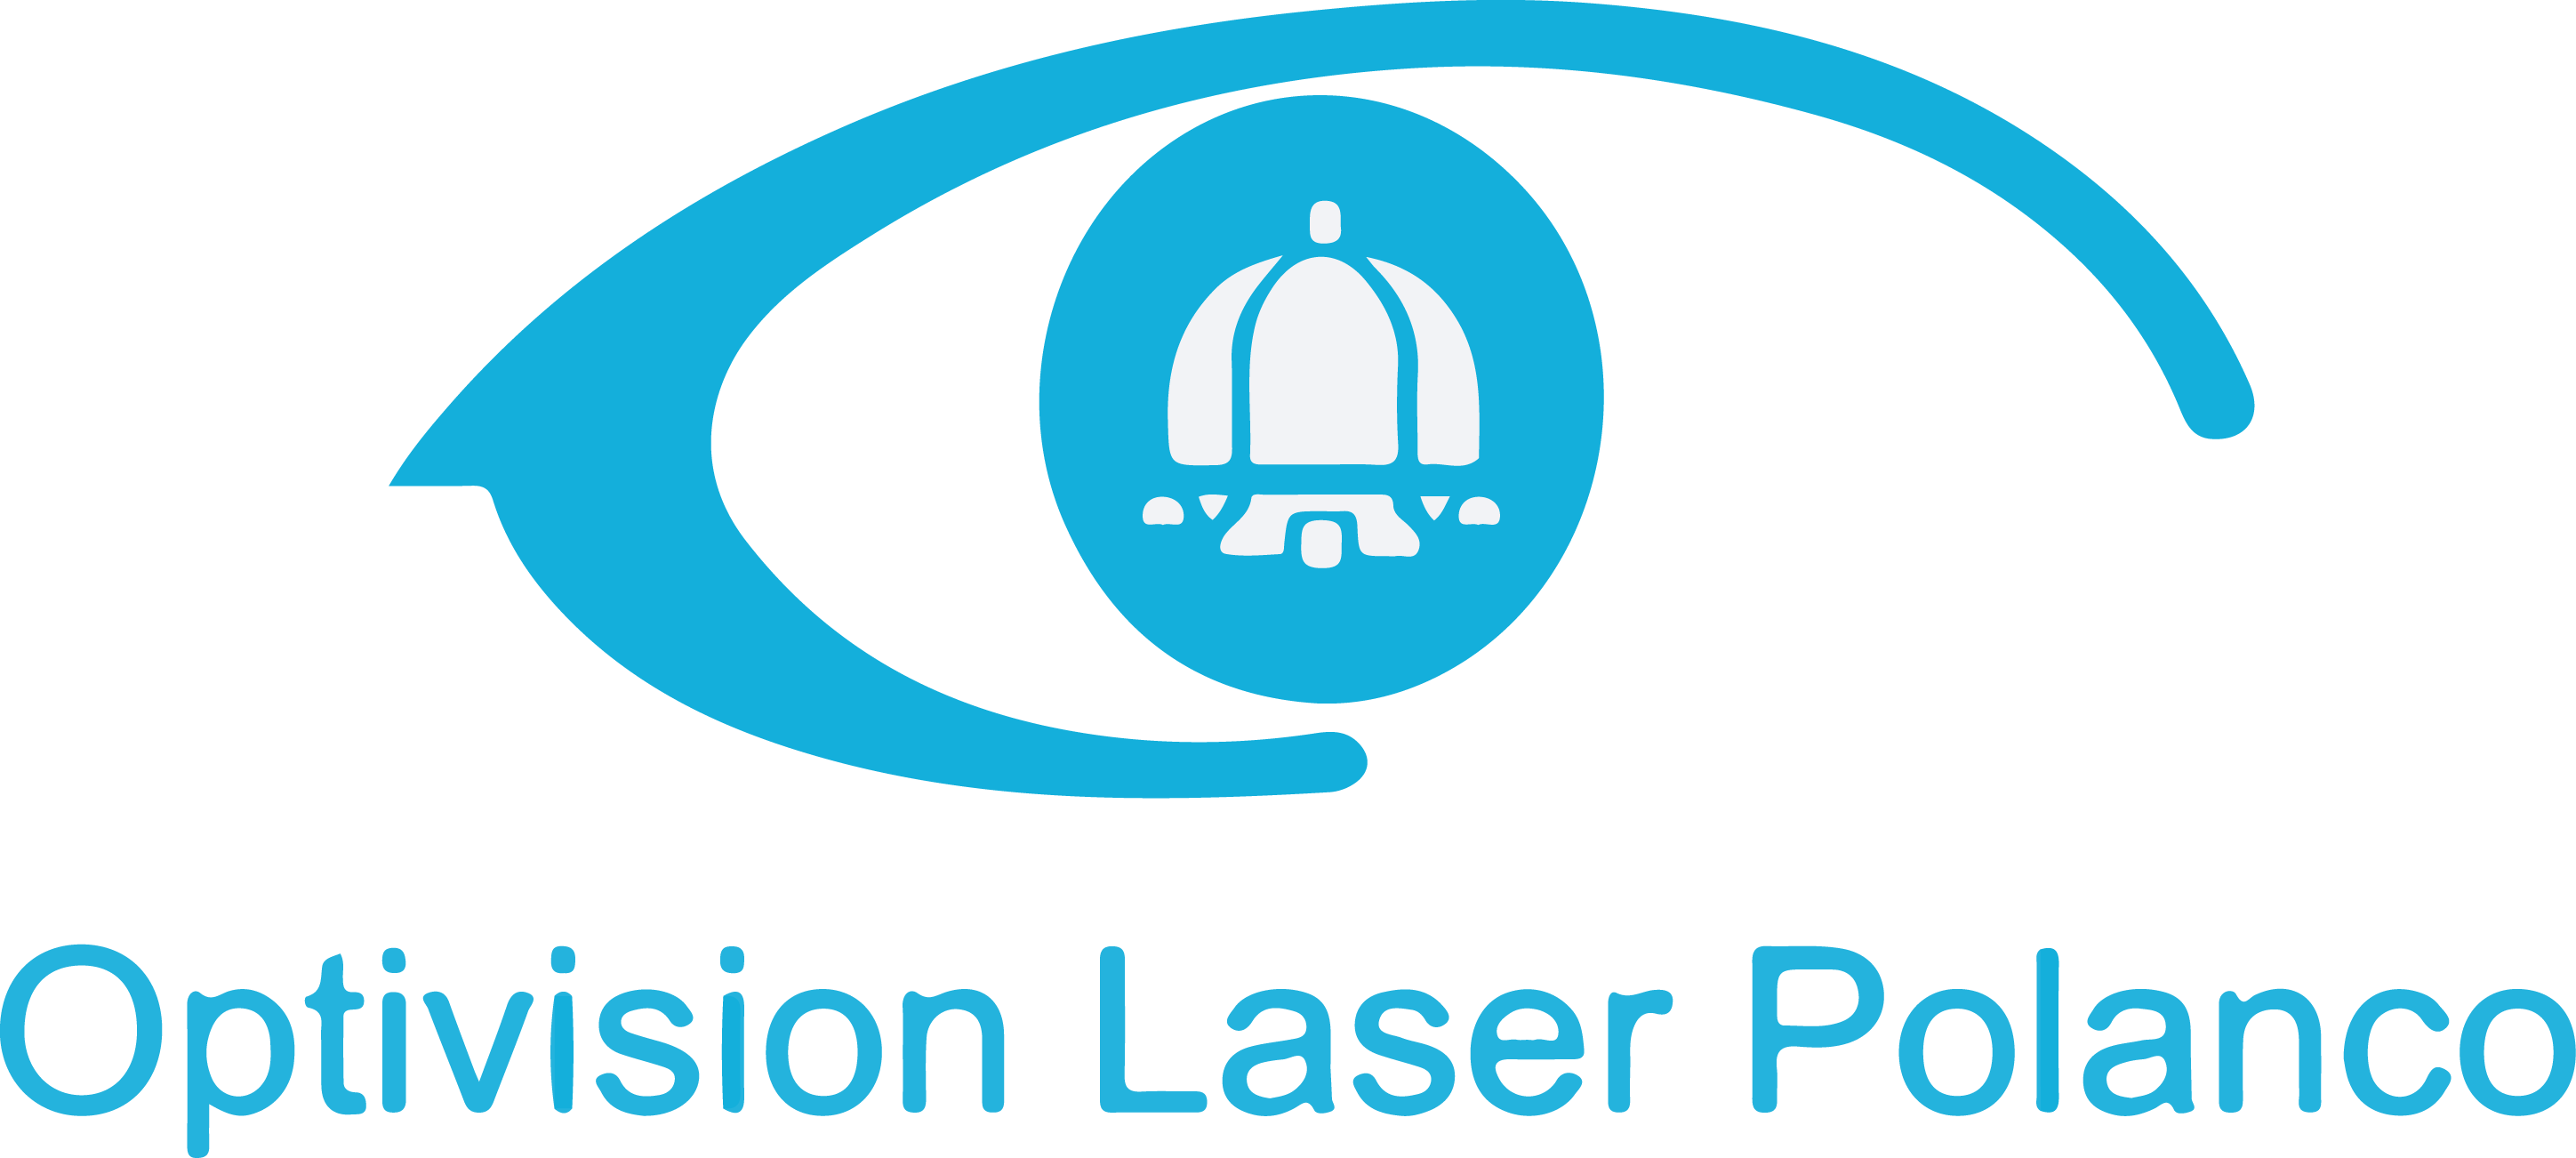 clinica optivision laser